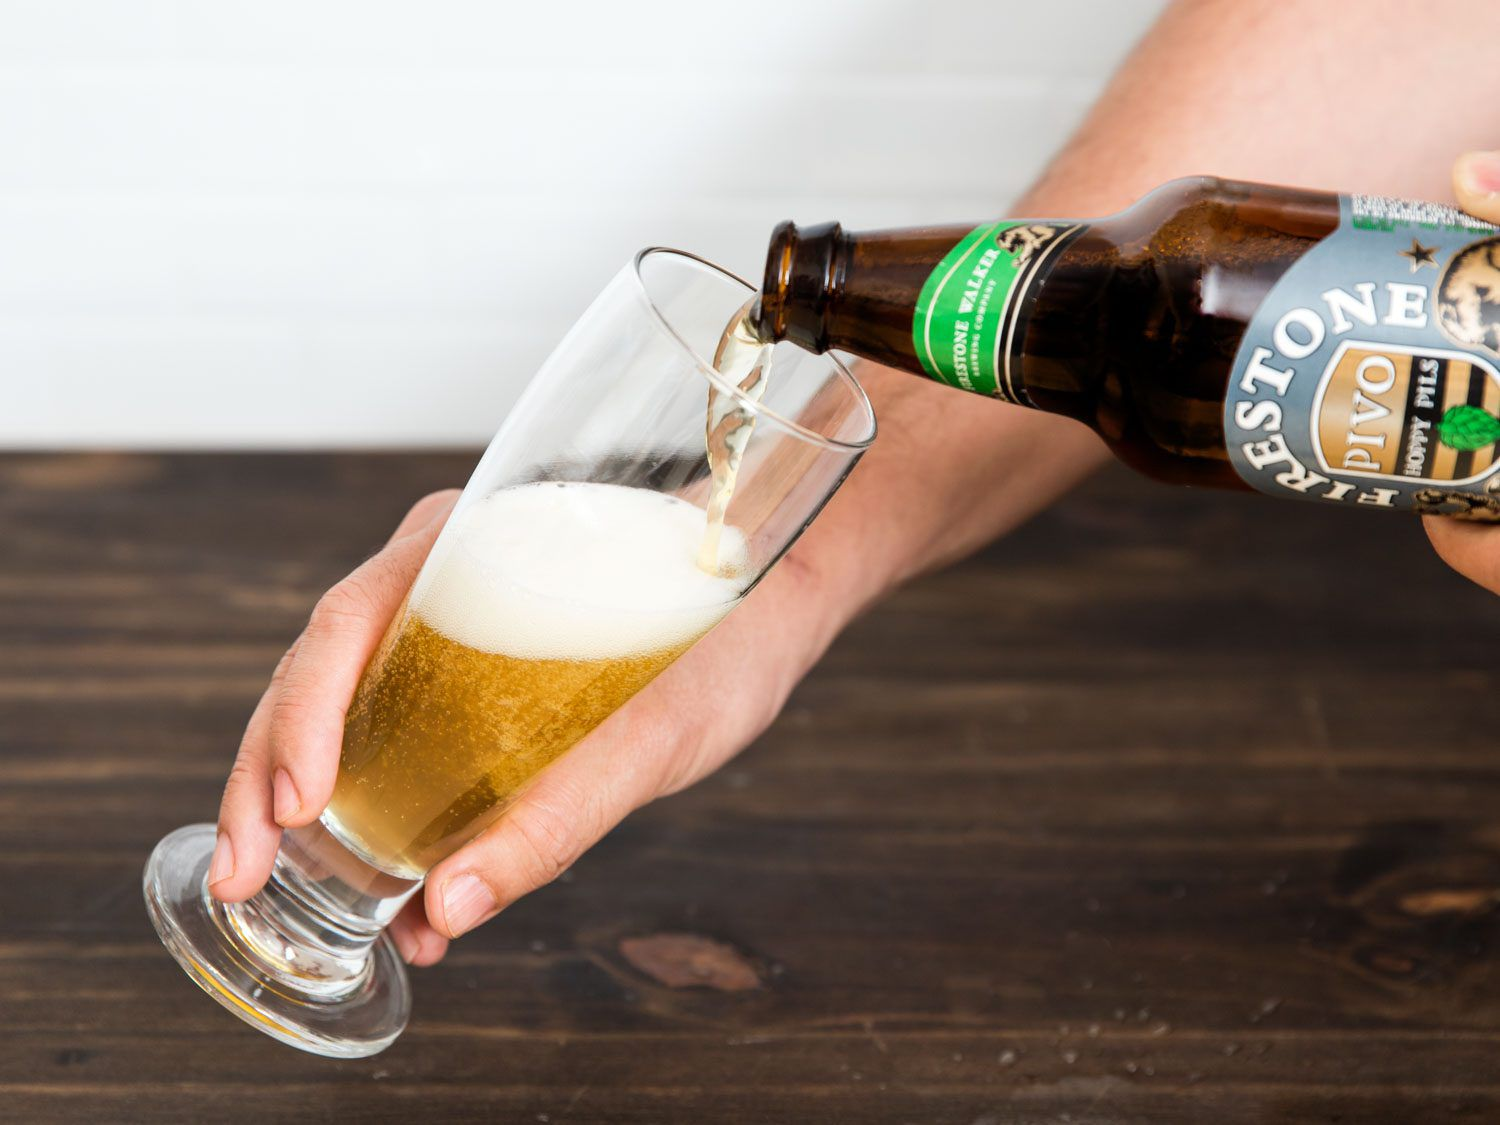 Pouring beer into a glass.